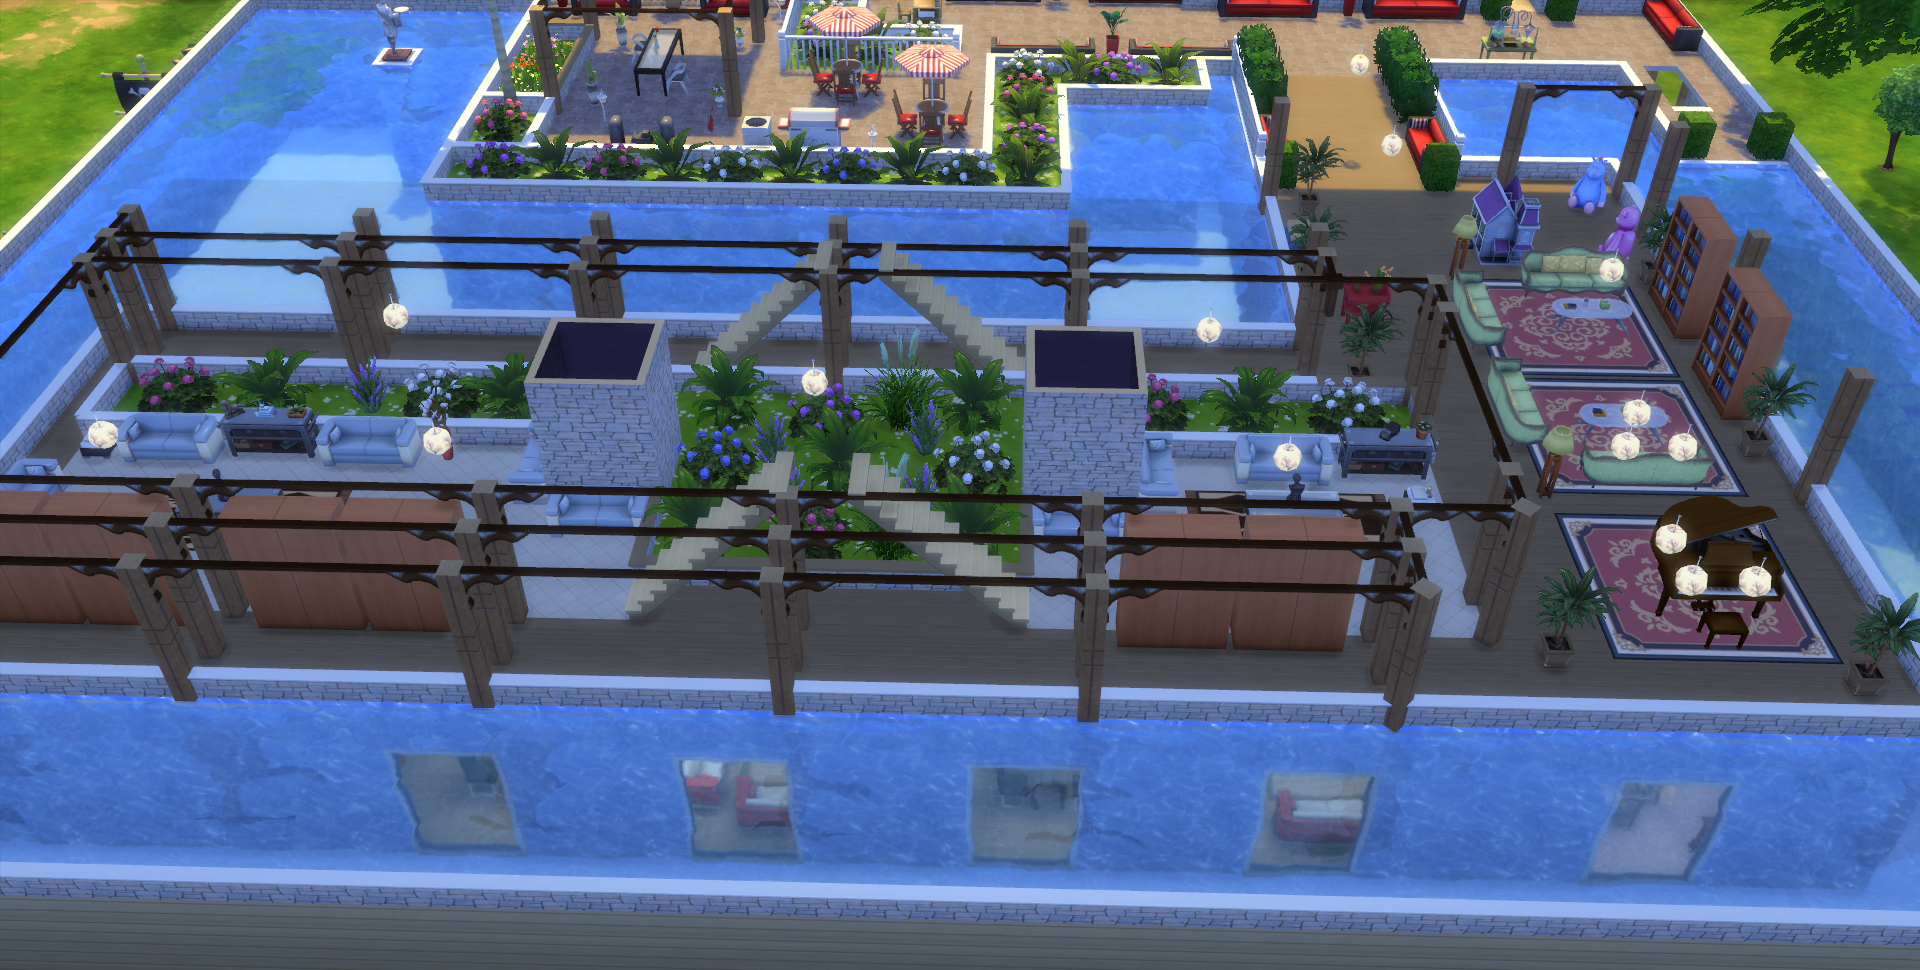 Mes cr ation sims 4 page 3 les sims for Maison sims 4 piscine